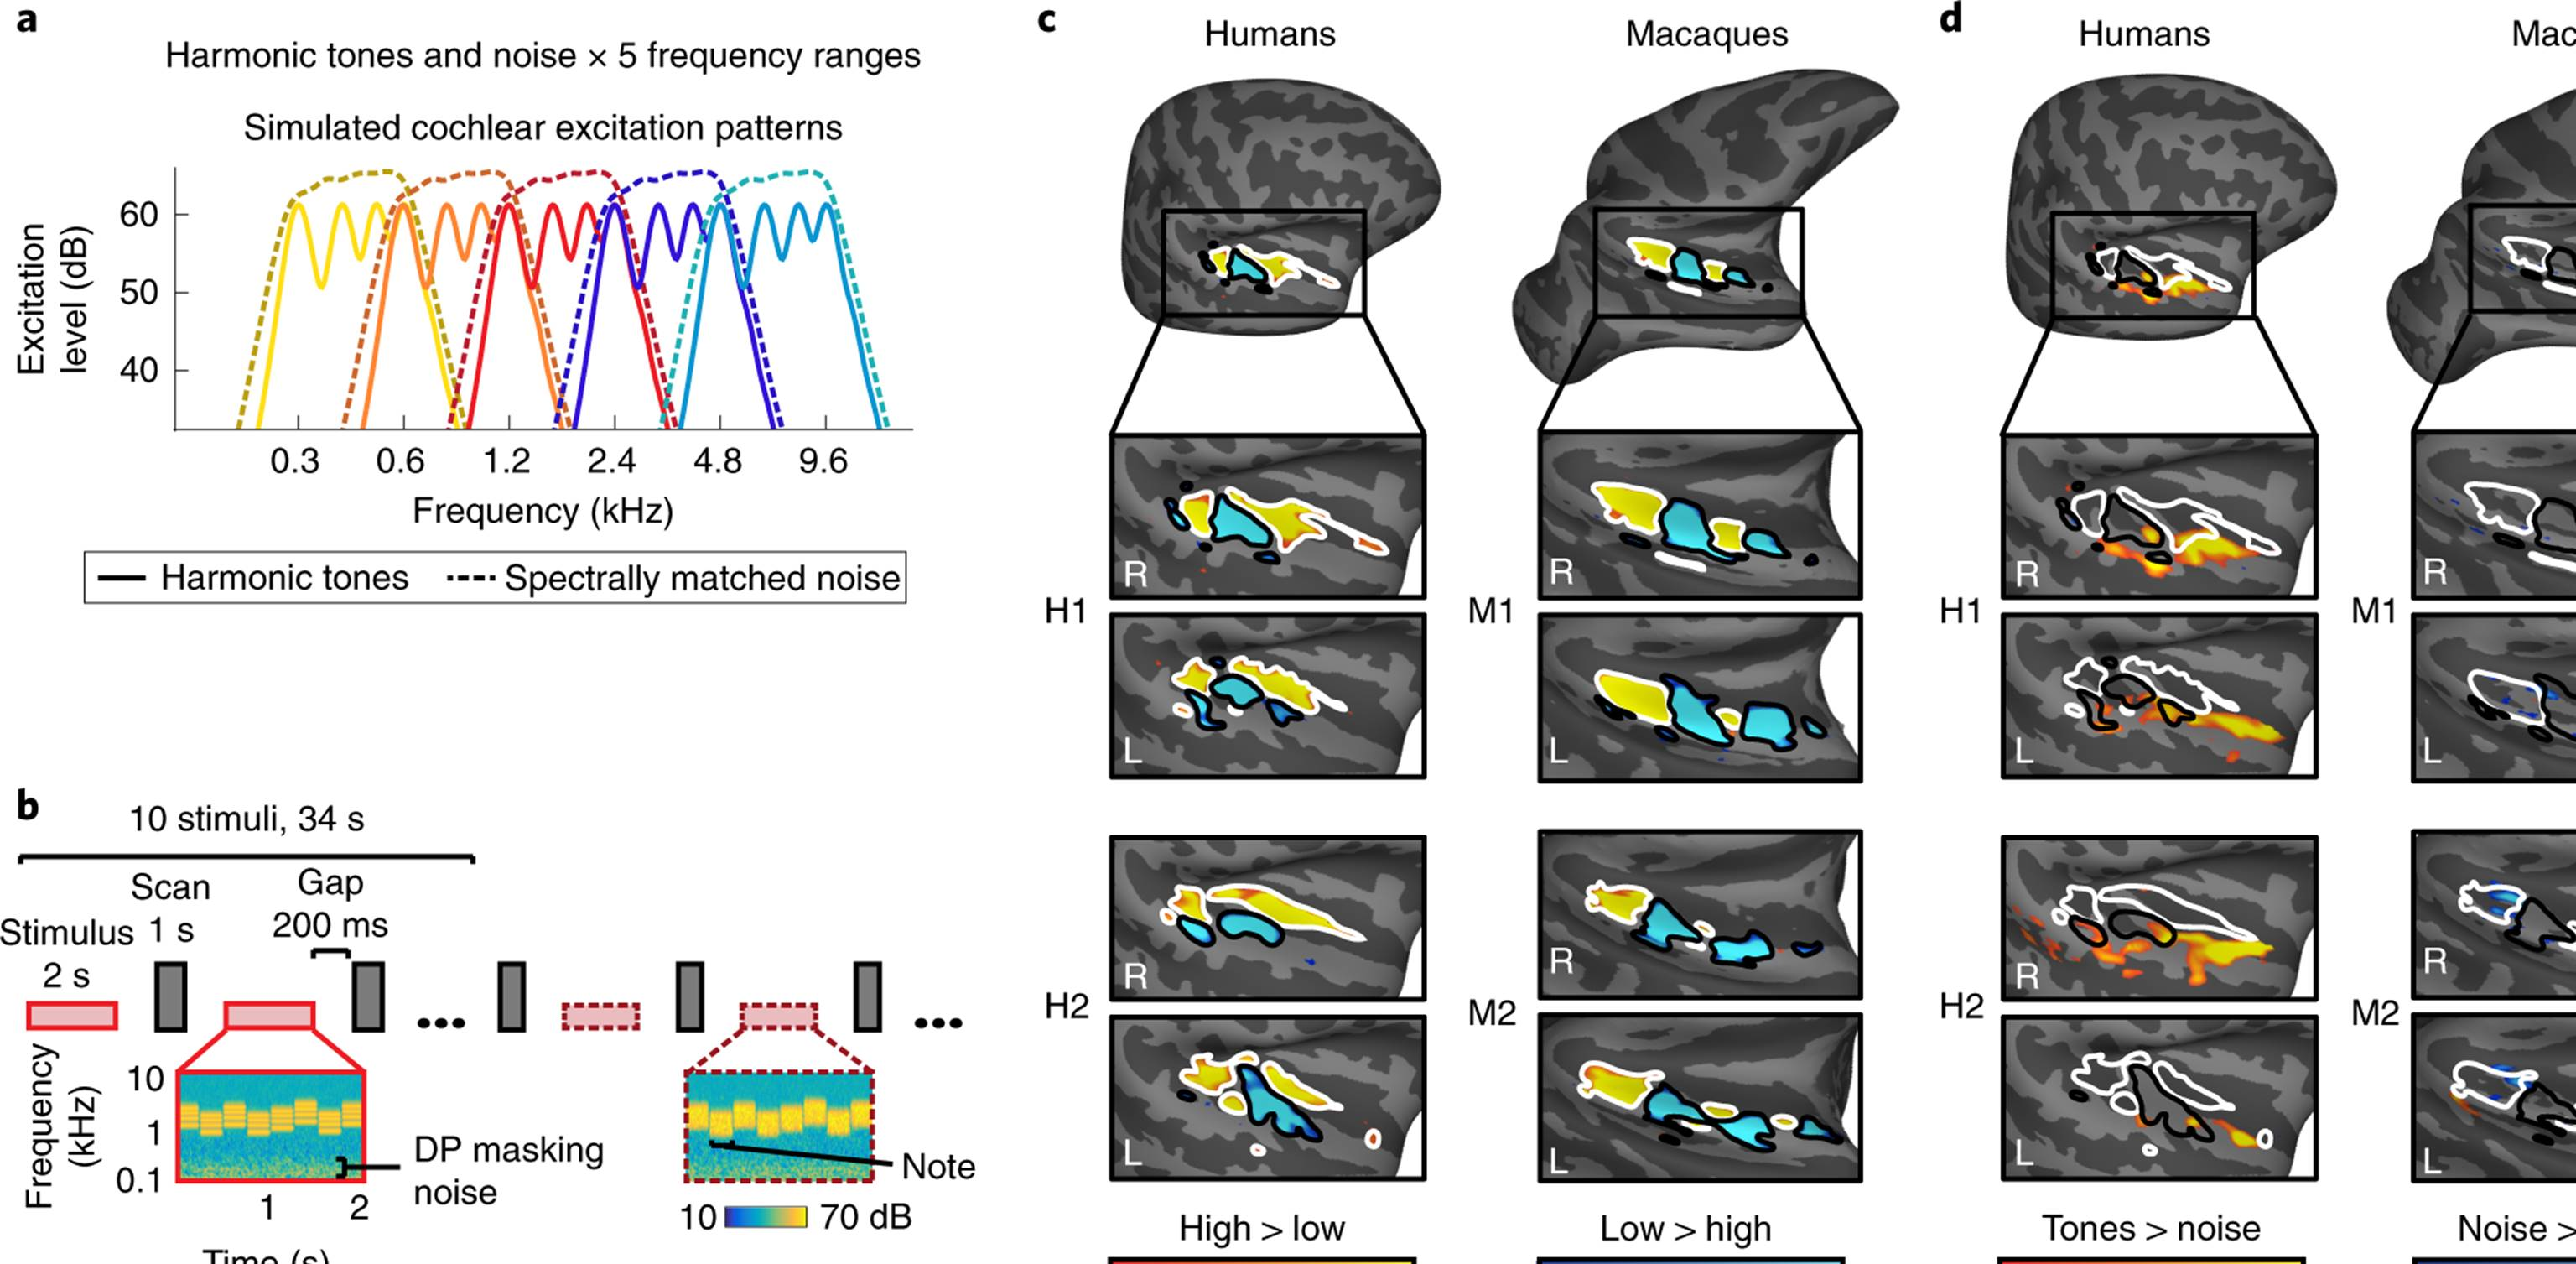 Why our brain is sensitive to musical pitch compared to monkeys